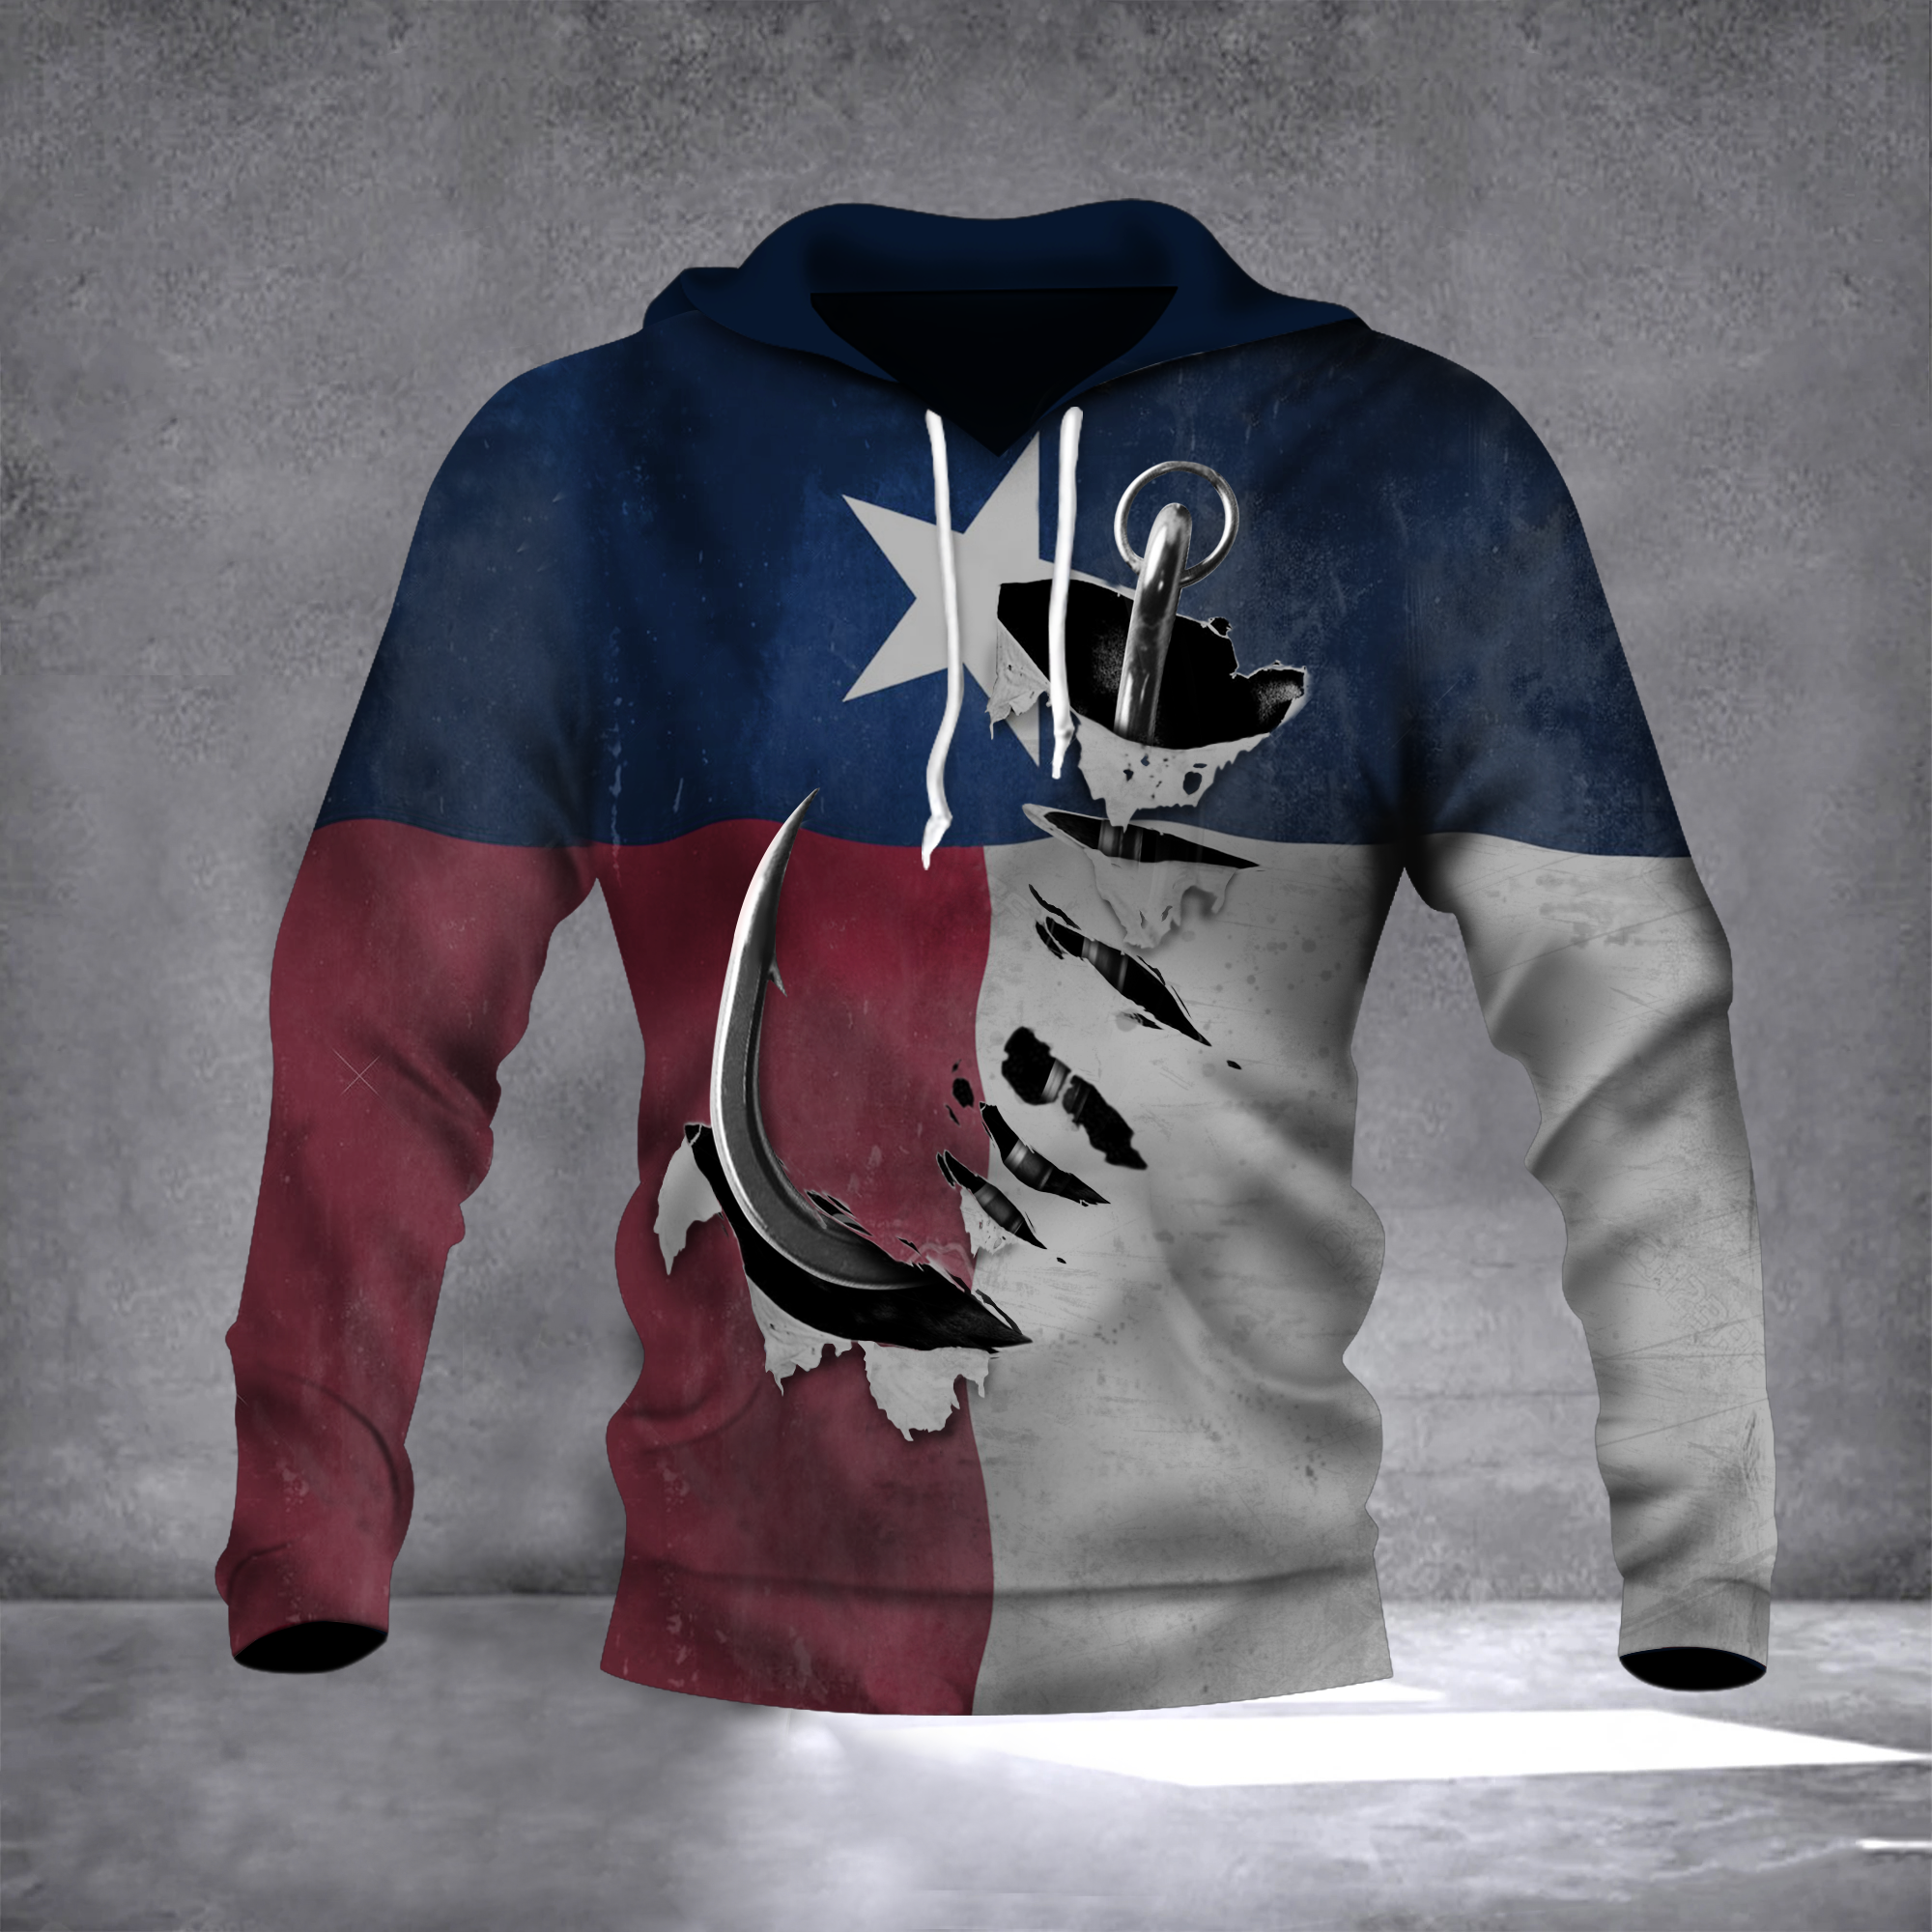 Fishing Hook Texas State Flag 3D Hoodie Old Vintage Pride Texan Hoodie Gift For Father1